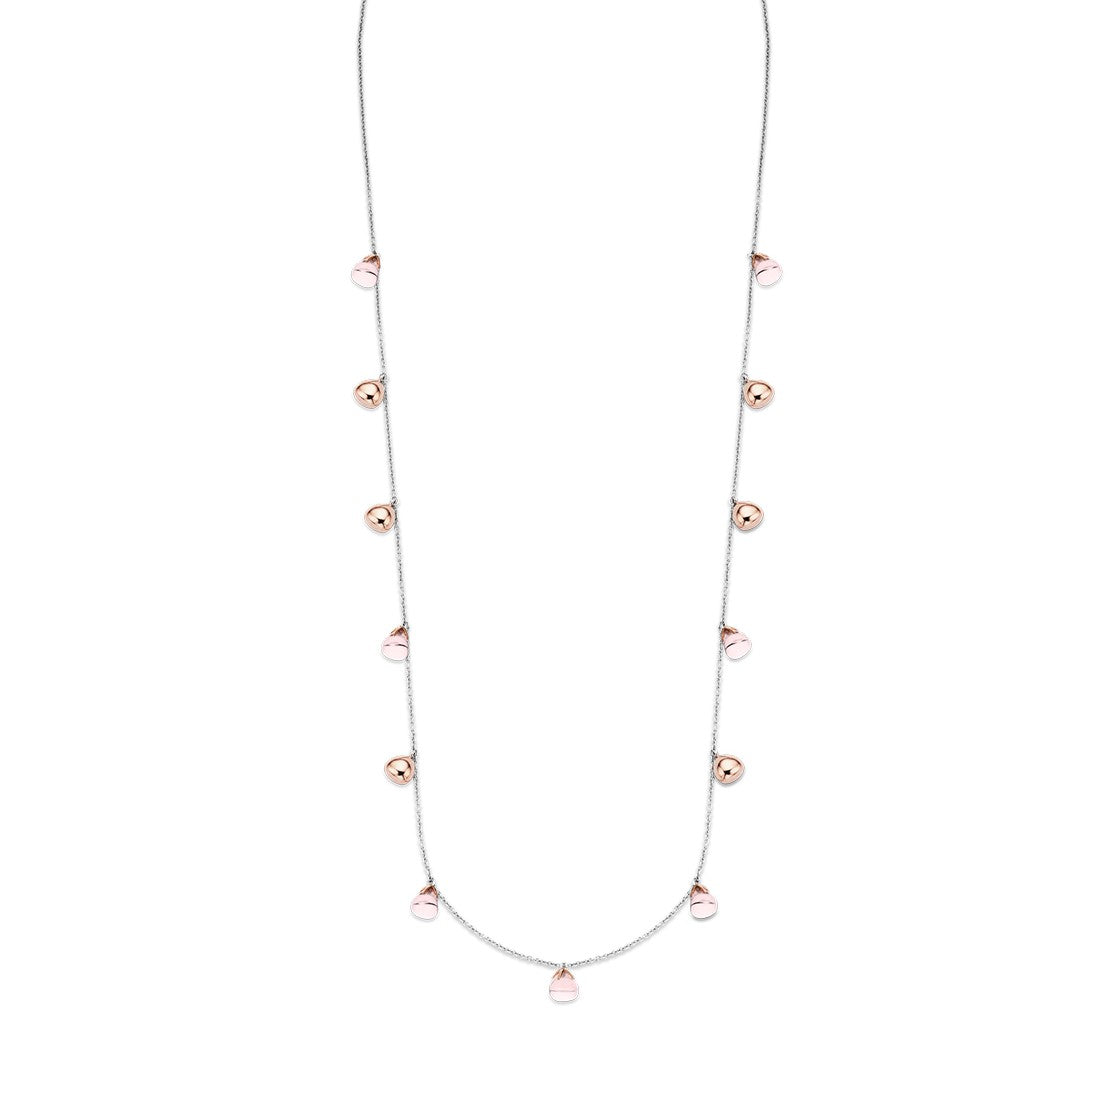 TI SENTO Sterling Silver Necklace with Pink and Rose Teardrop Charms